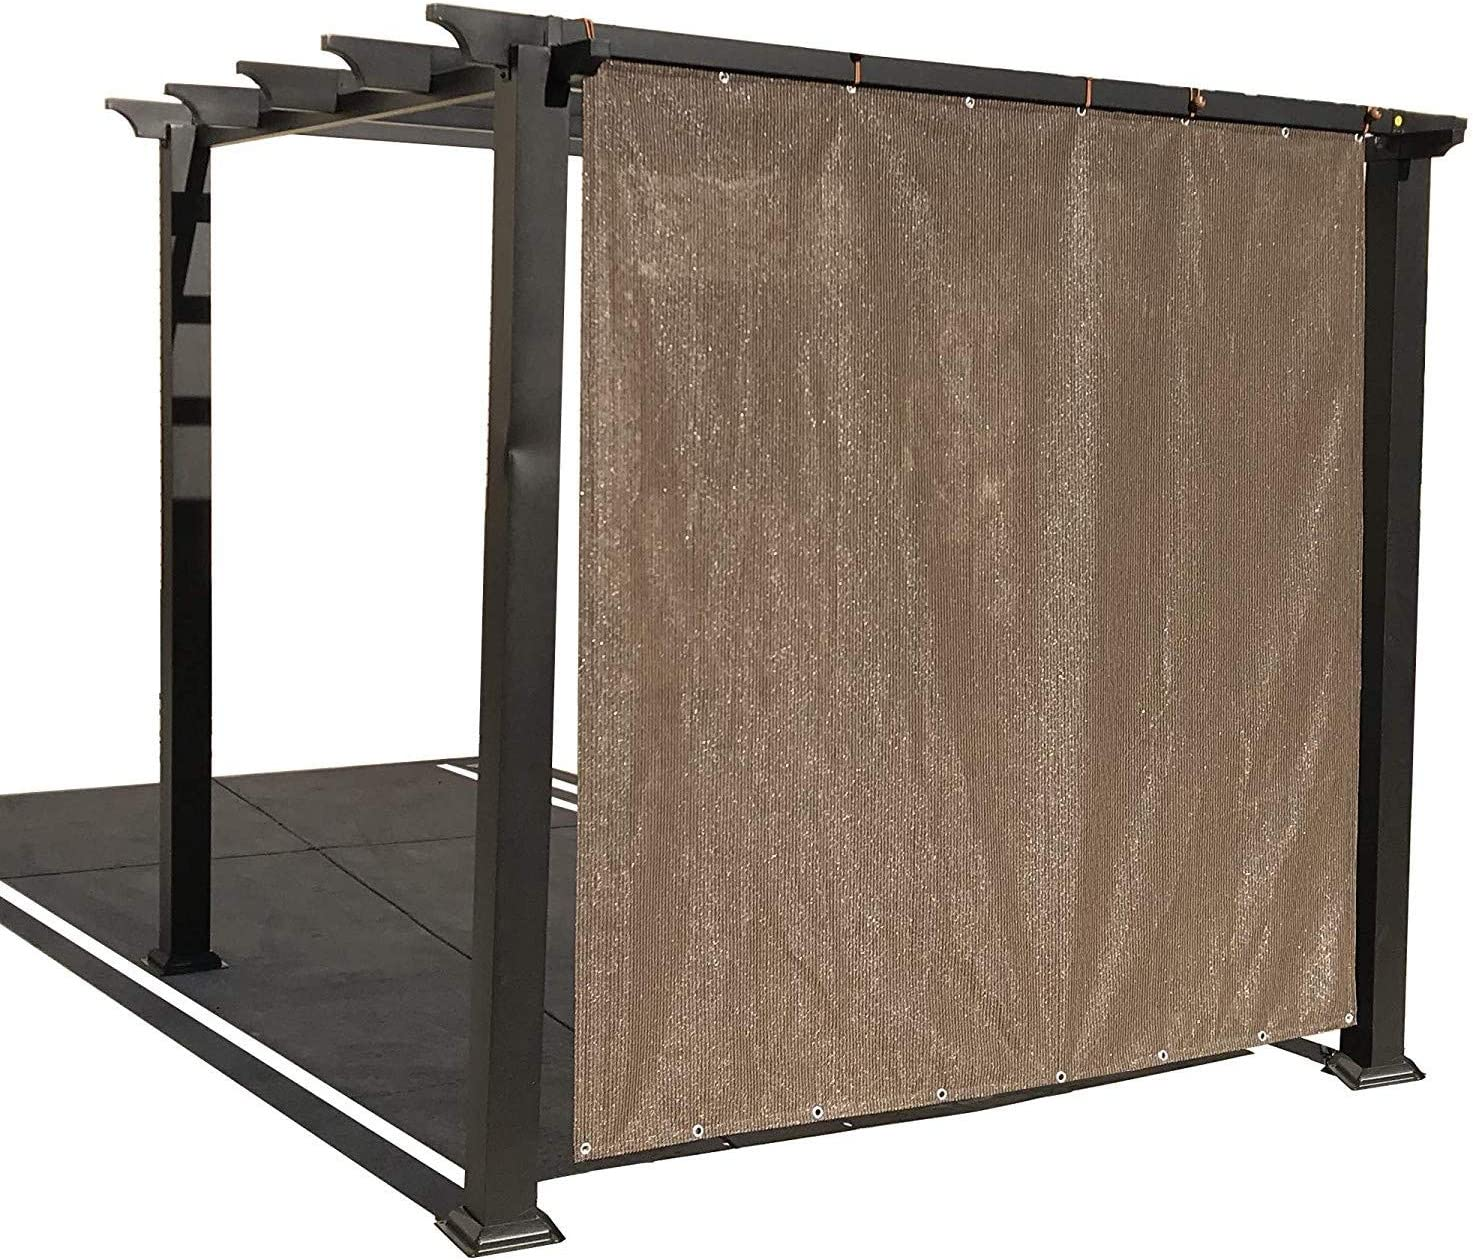 Alion Home Sun Shade Privacy Panel with Grommets on 2 Sides for Patio, Awning, Window, Pergola or Gazebo - Mocha Brown (10' x 8')